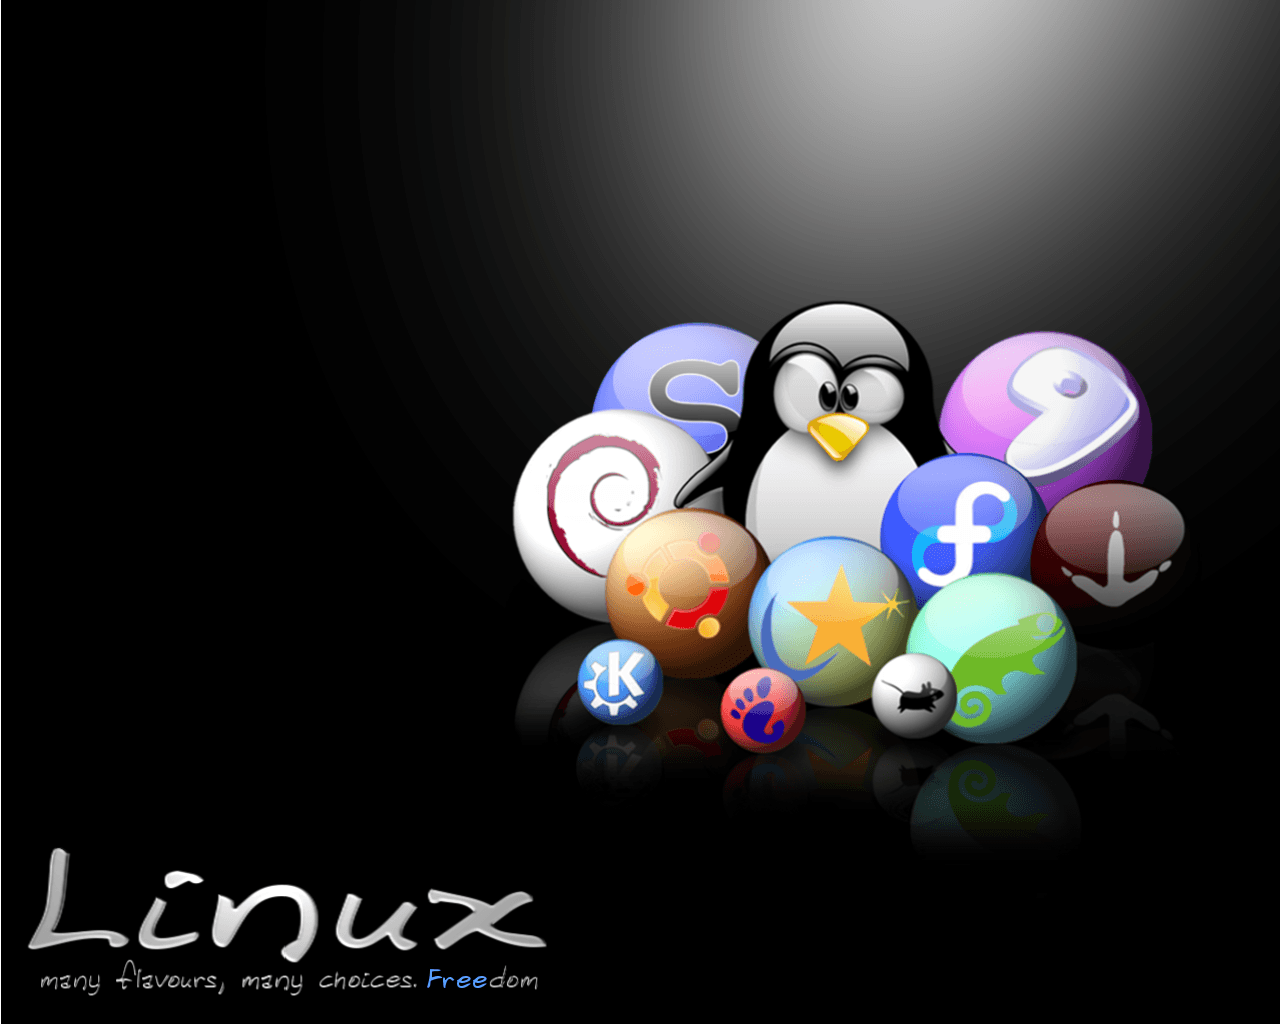 Best Linux Wallpapers 1280x1024